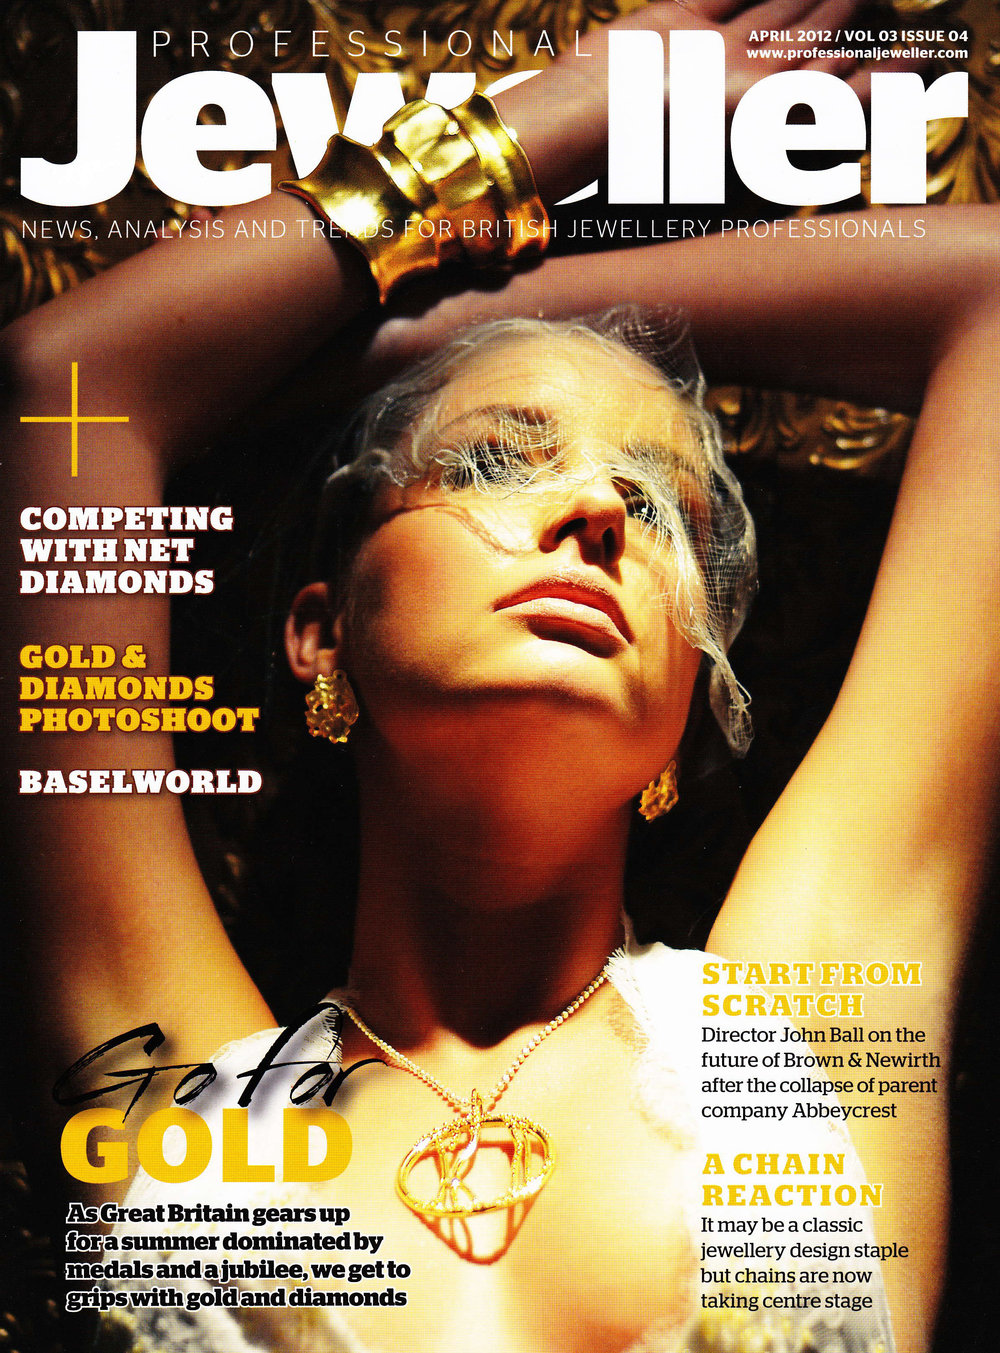 pro jeweller front cover.jpg